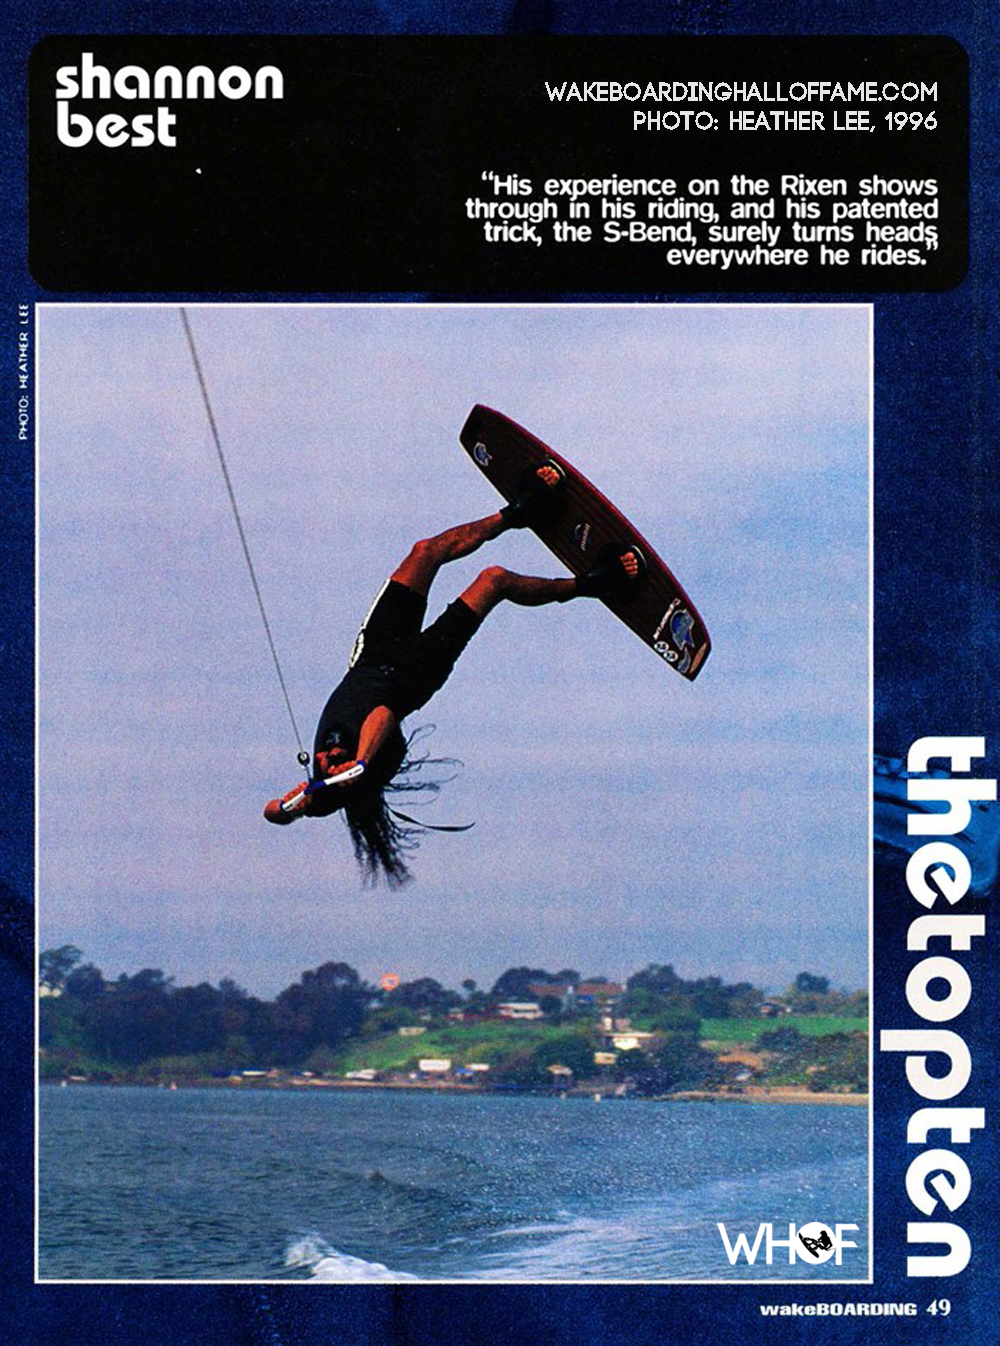 Shannon Best Top 10 Wakeboarder, 1996. S-Bend photo by Heather Lee